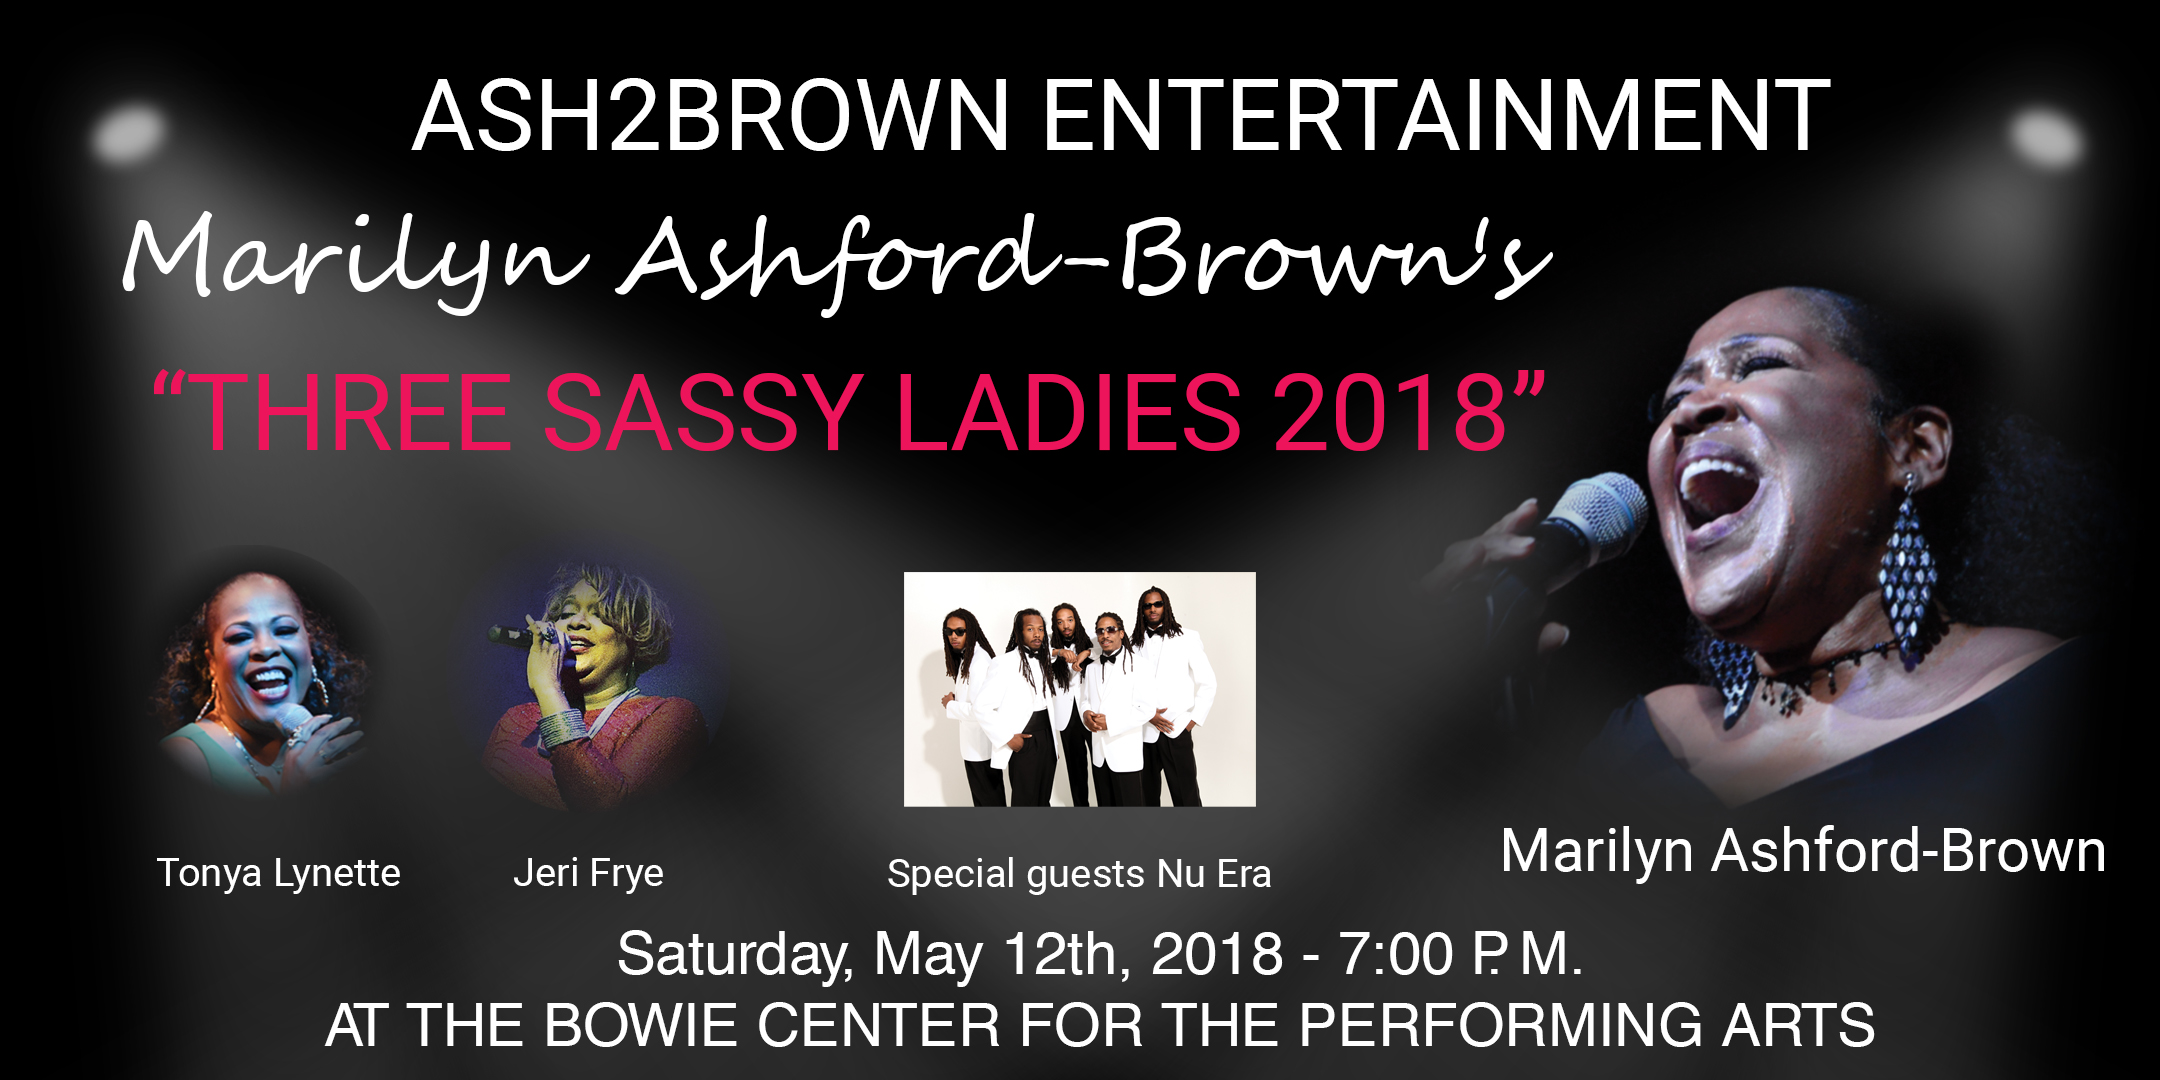 Marilyn Ashford-Brown - Sassy Lady - Concert May 2018